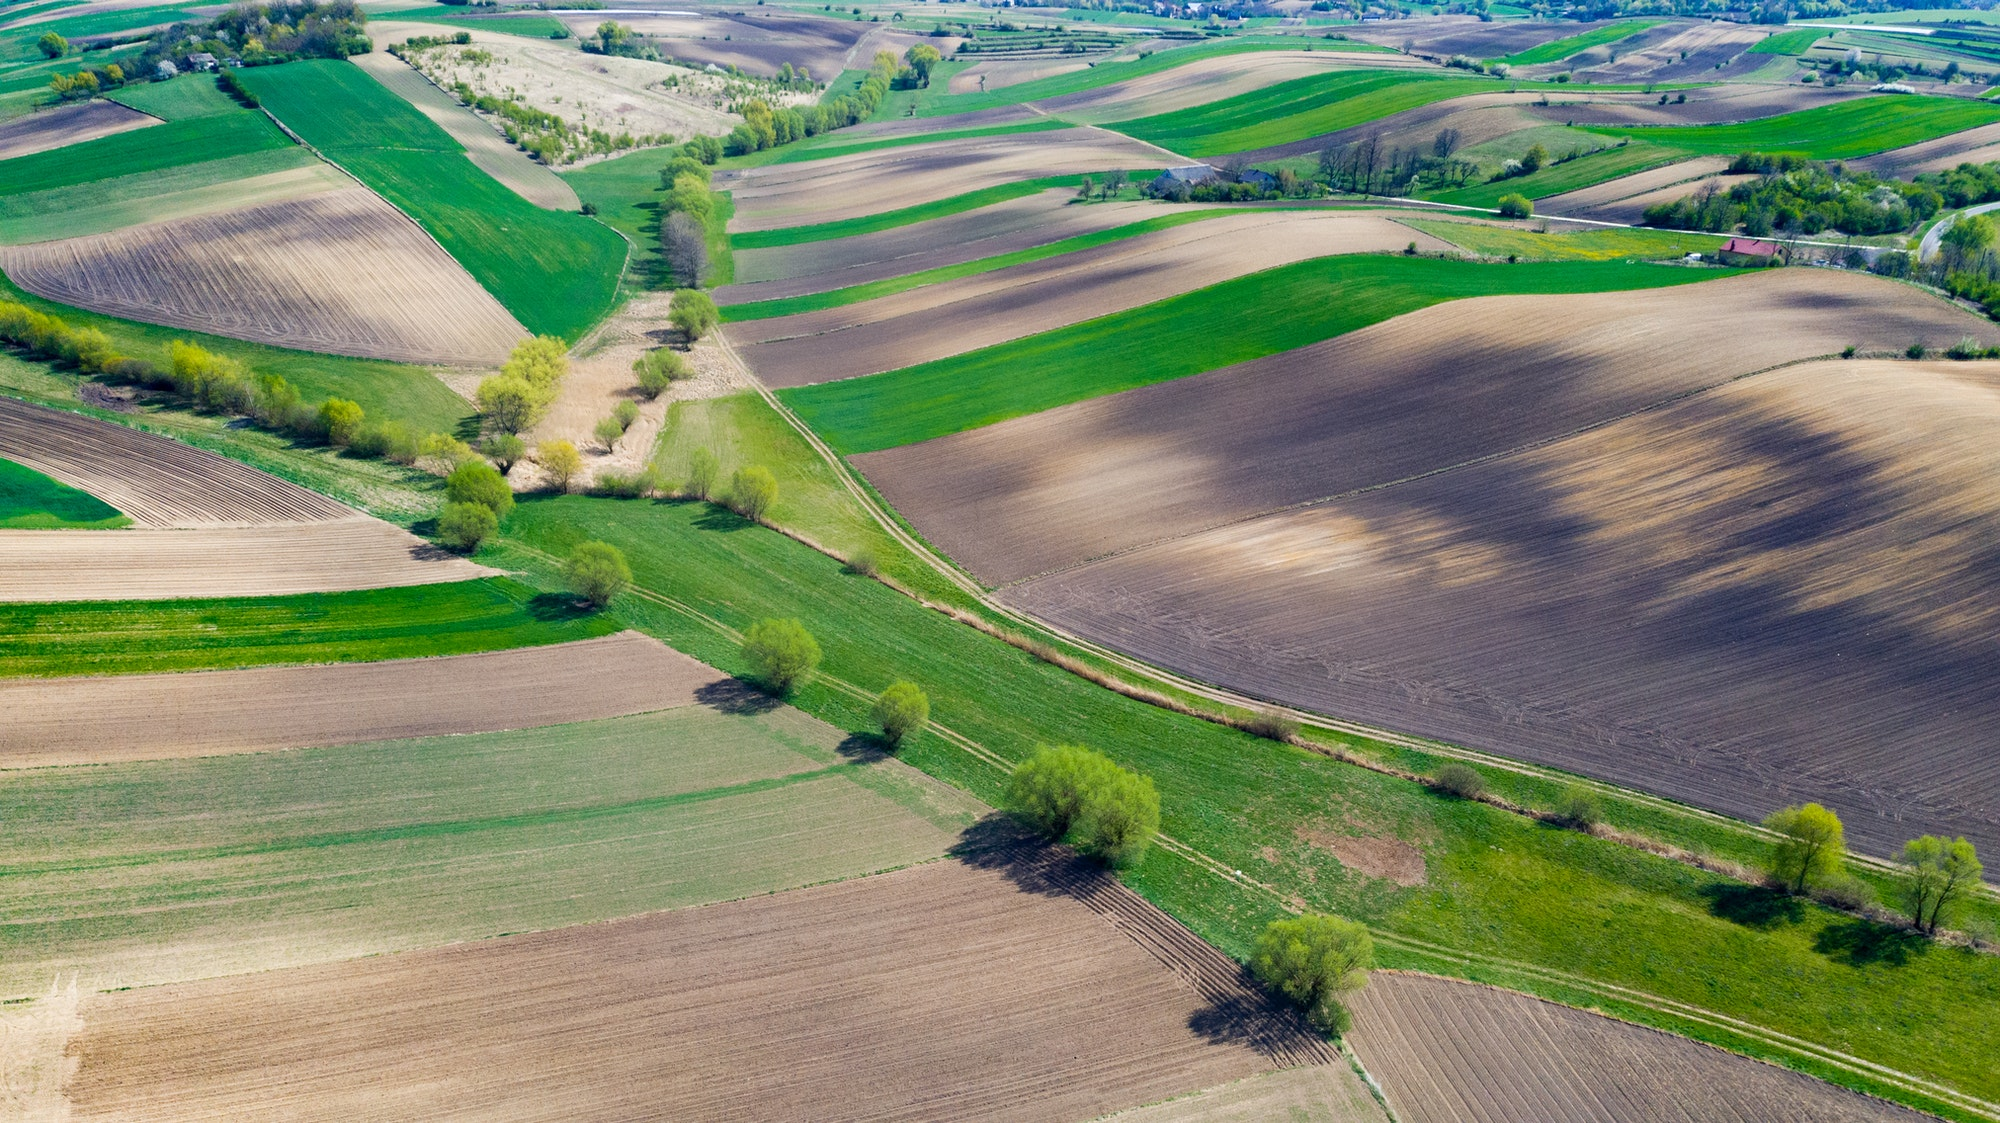 Geometric Farm Fields Shapes. Cultivated Countryside Scenic Landscape. Aerial Drone View